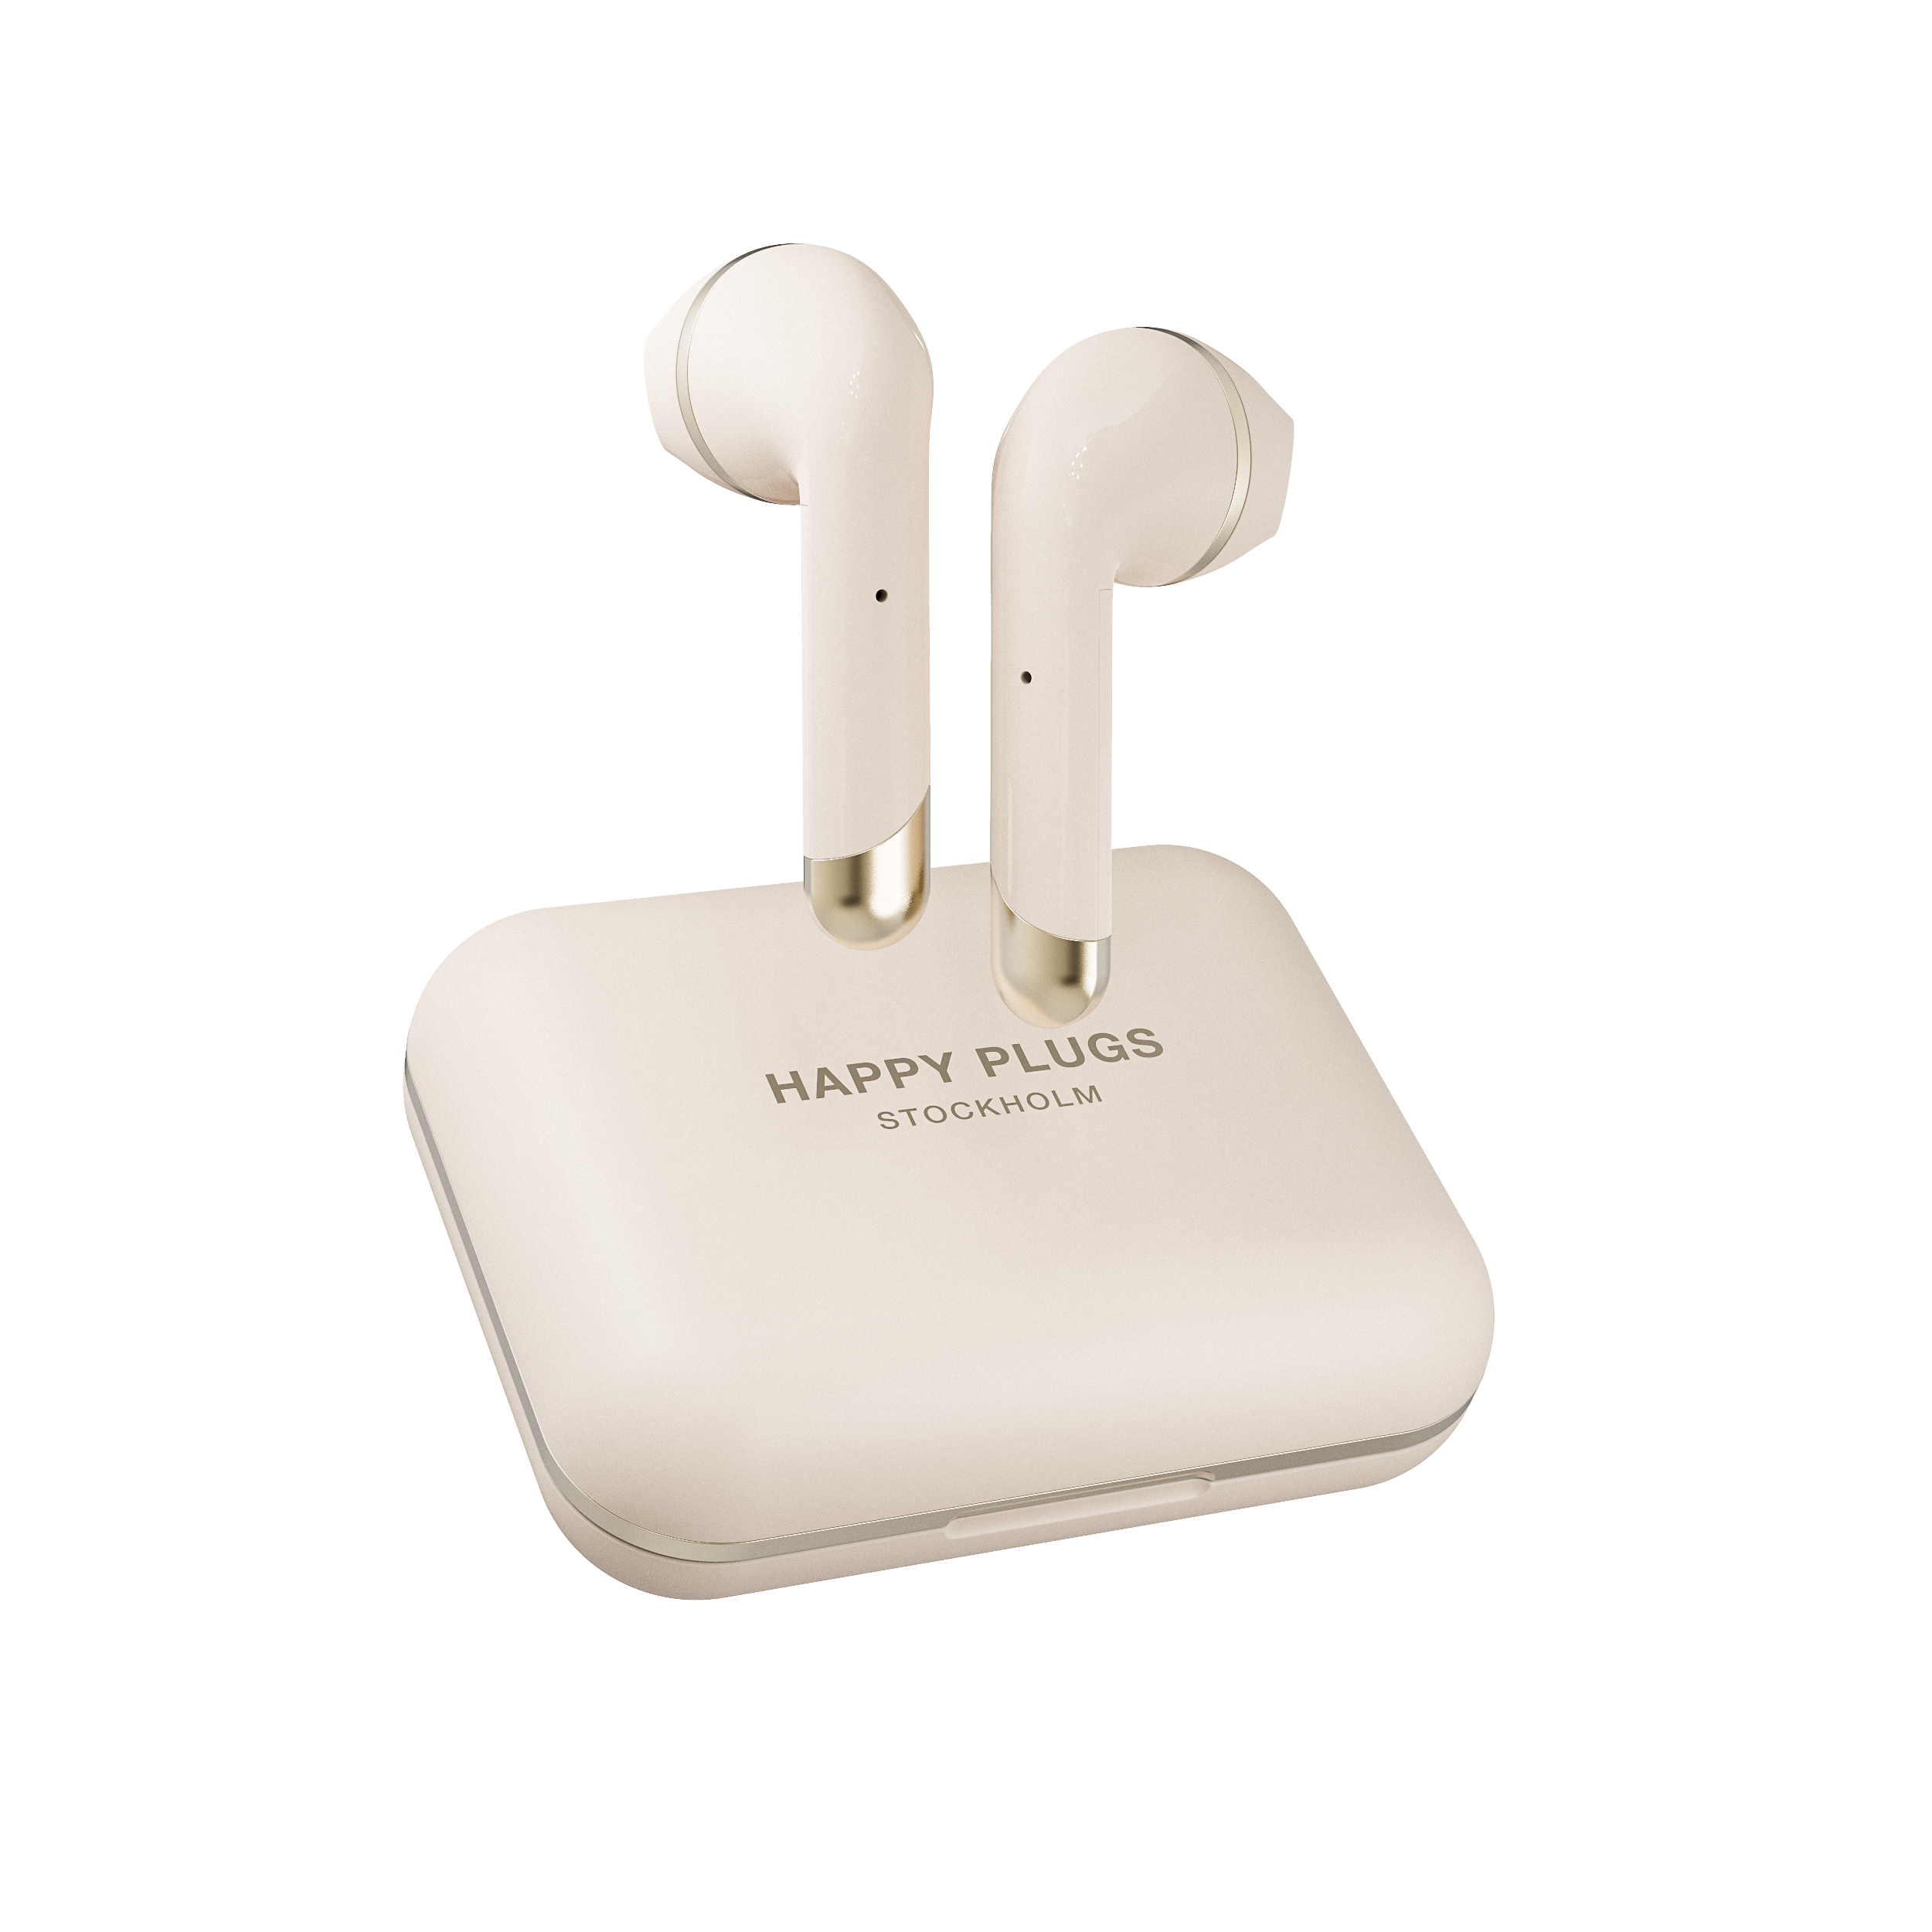 AIR 1 PLUS EARBUD GOLD 1652